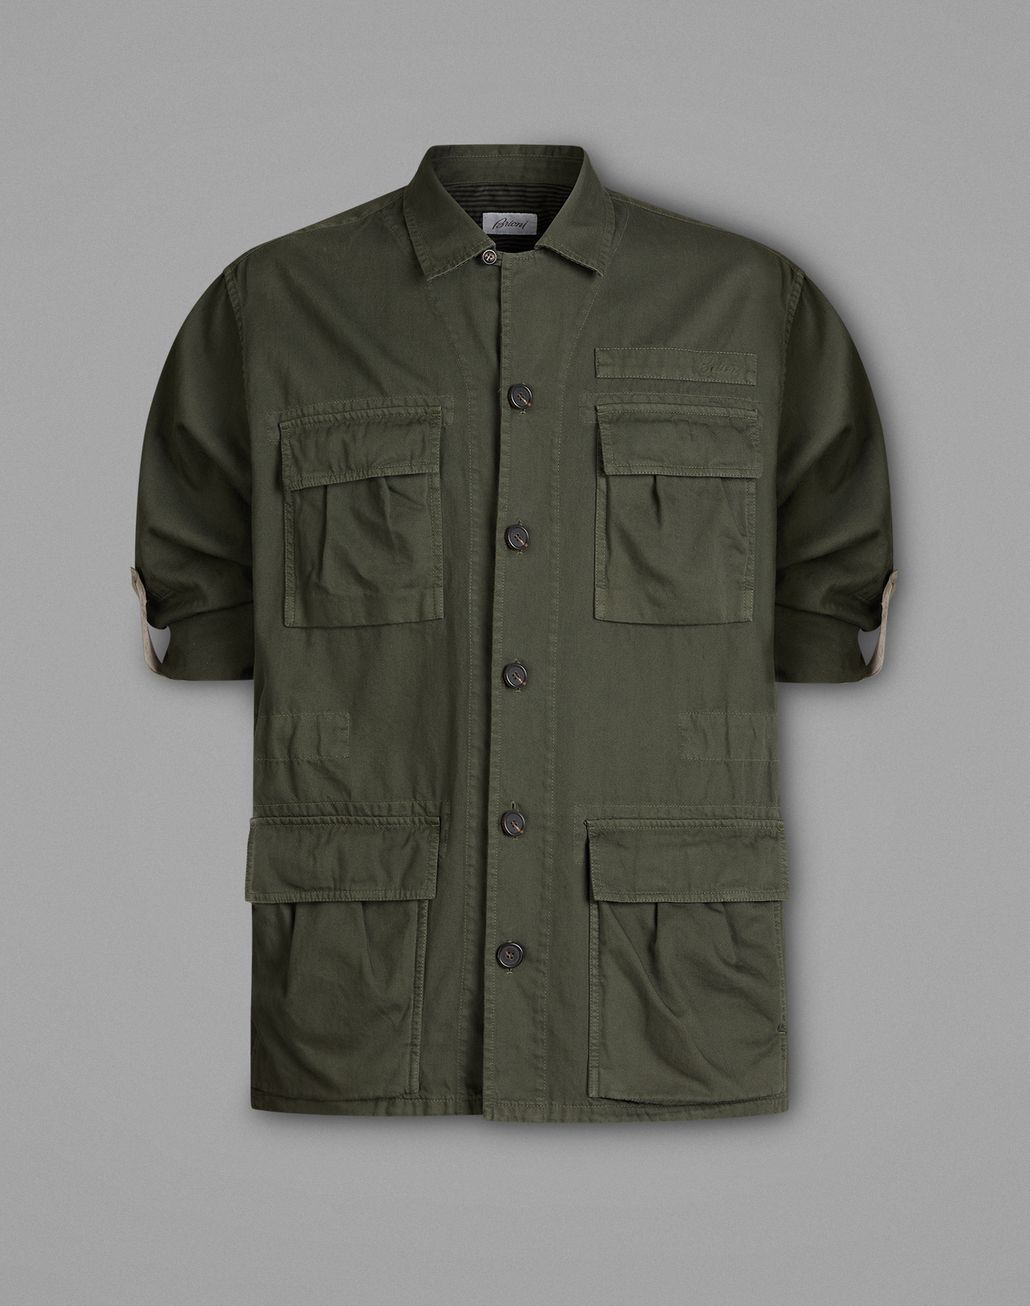 BRIONI Dark Green Safari Jacket Coats & Raincoats Man f